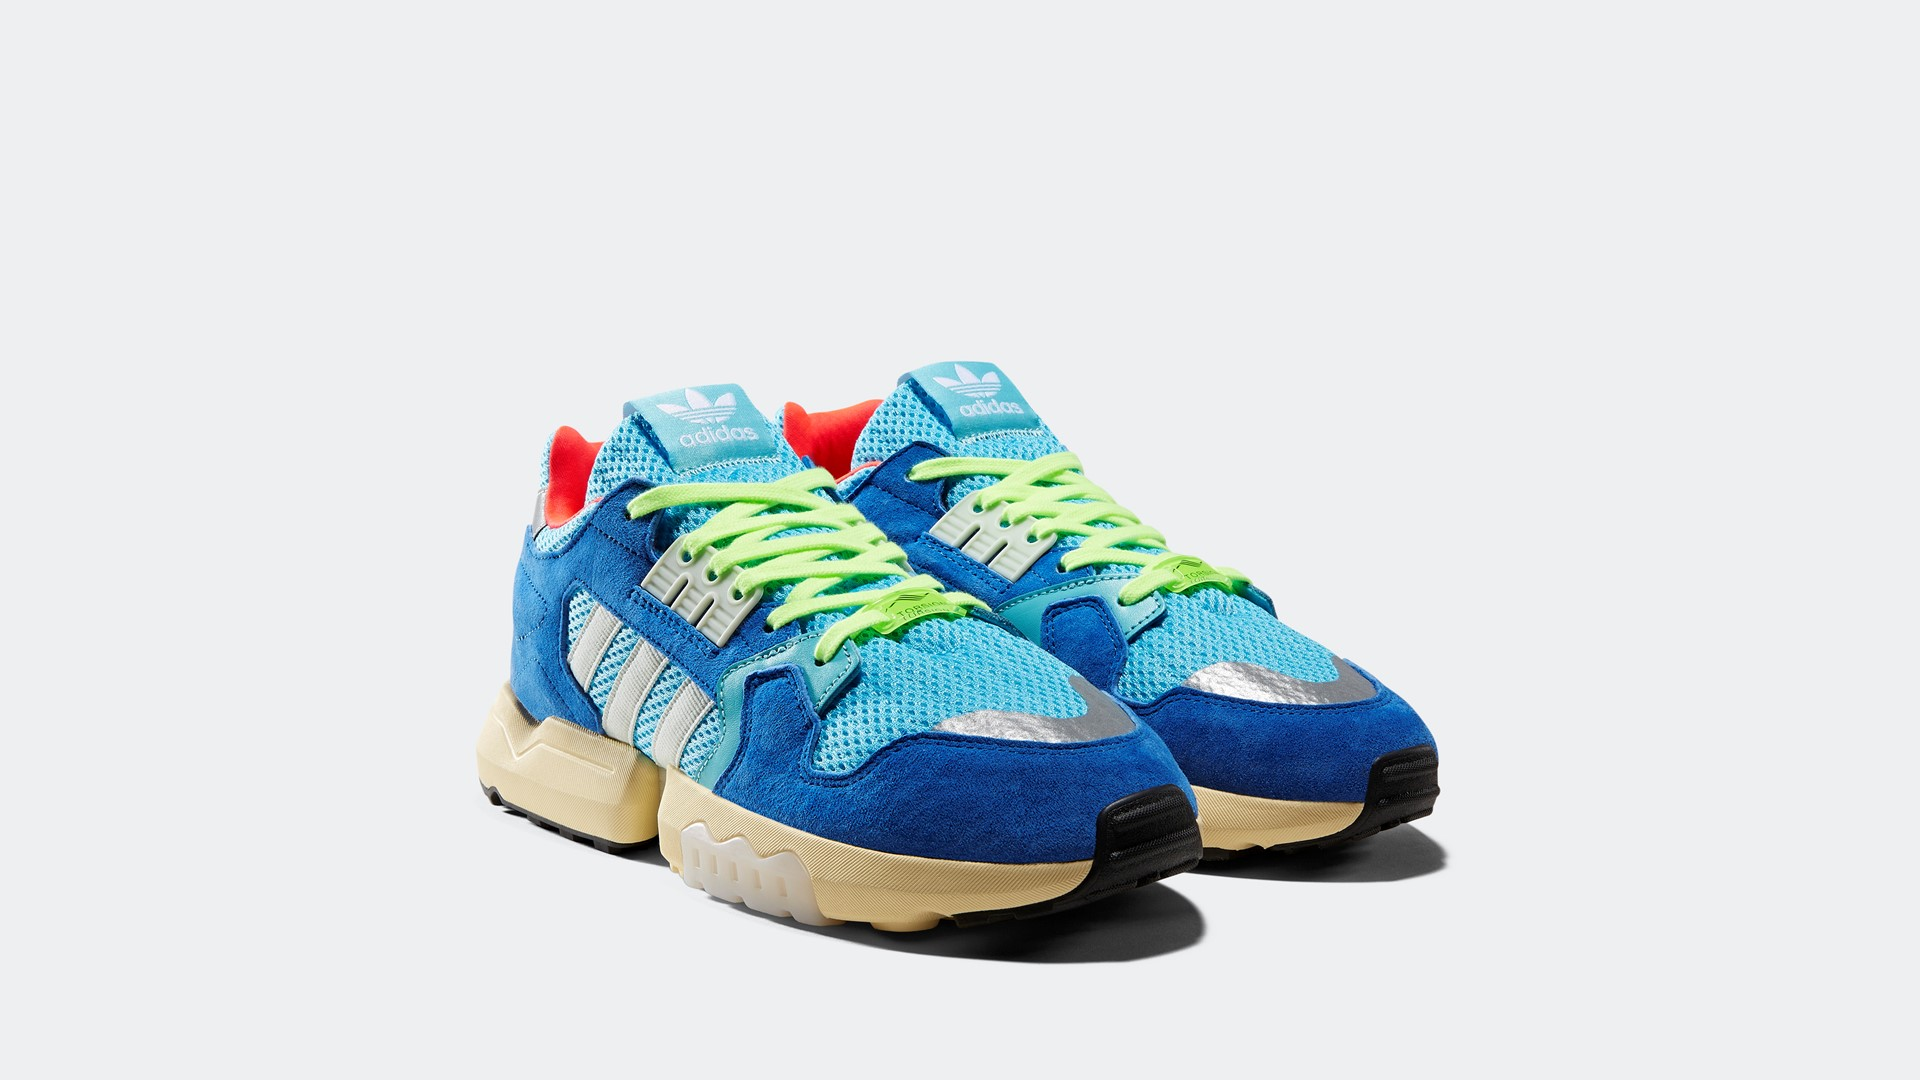 premium selection 8c69e 0d359 adidas Originals Reveals Its Reimagined ZX Torsion Silhouette